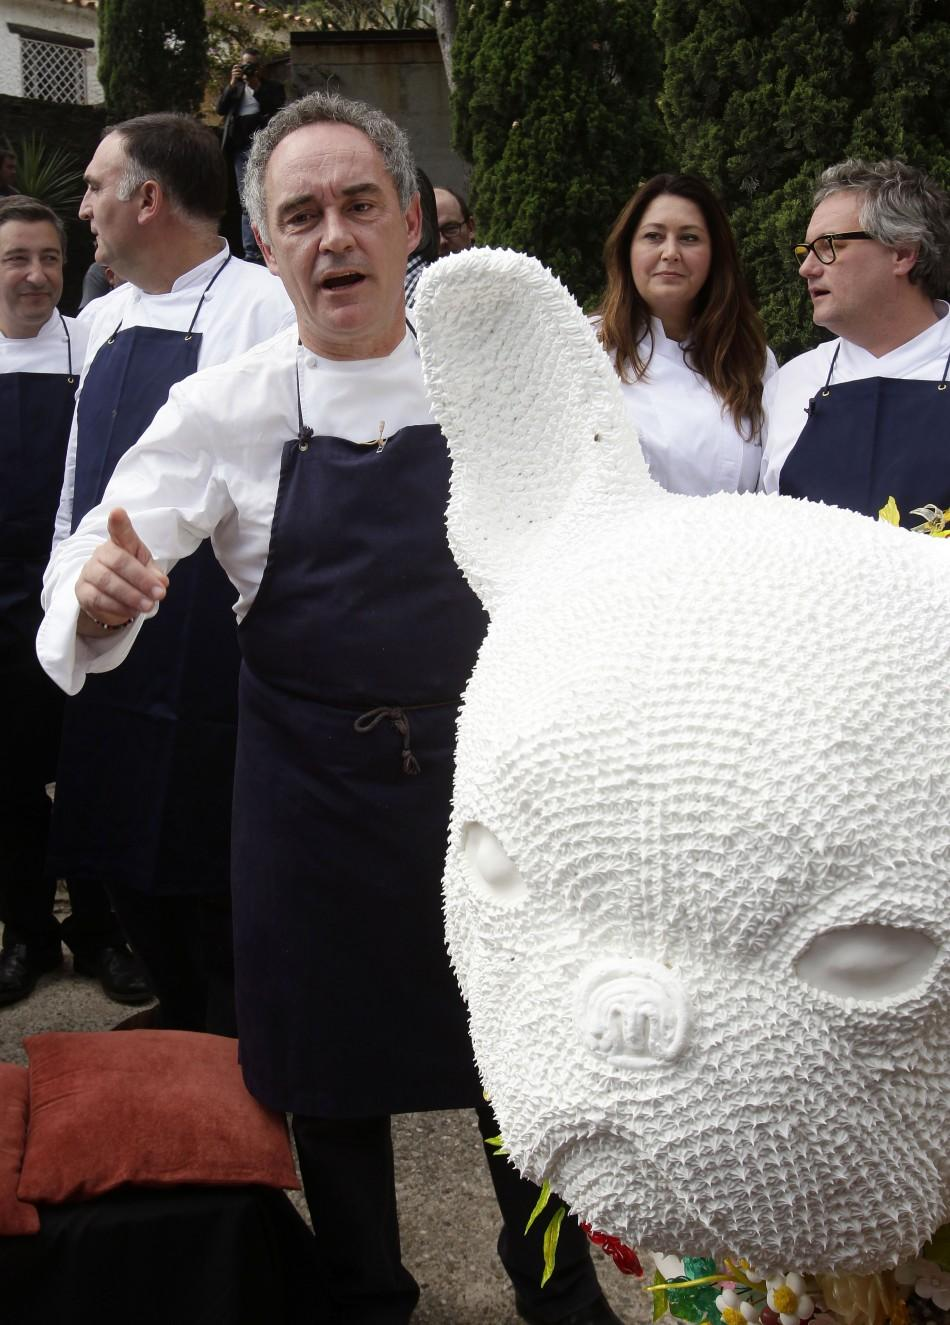 Ferran Adria, chef and co-owner of El Bulli restaurant, gestures during a news conference outside the restaurant in Cala Montjoi, near Roses.